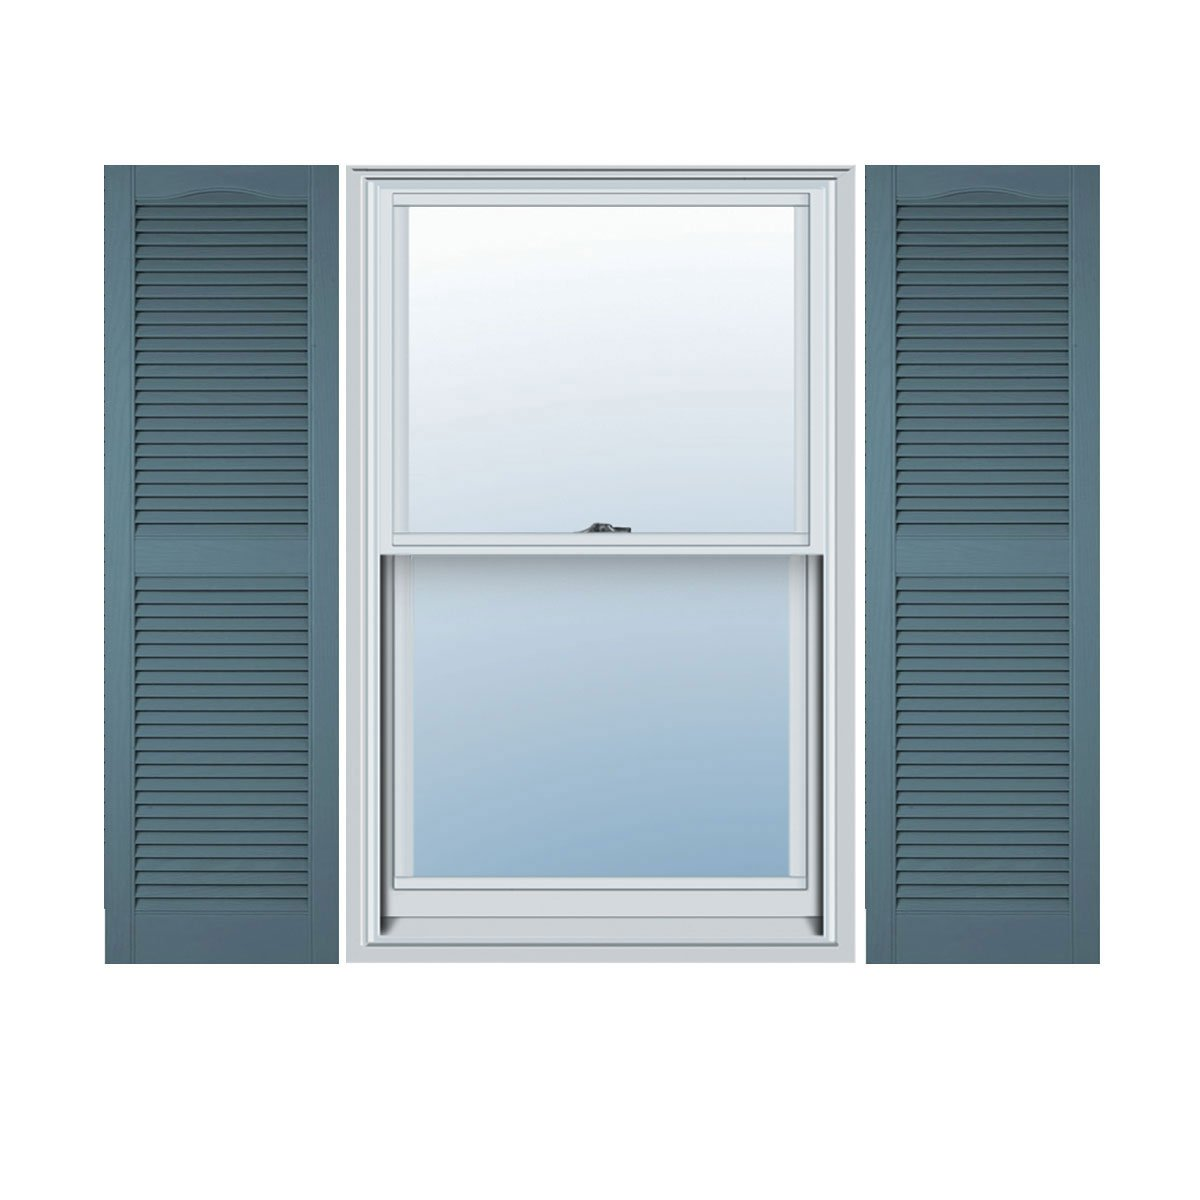 Mid-America 00 01 1267004 12'' x 67'' Wedgewood Blue Louvered Vinyl Exterior Shutters (Pair)